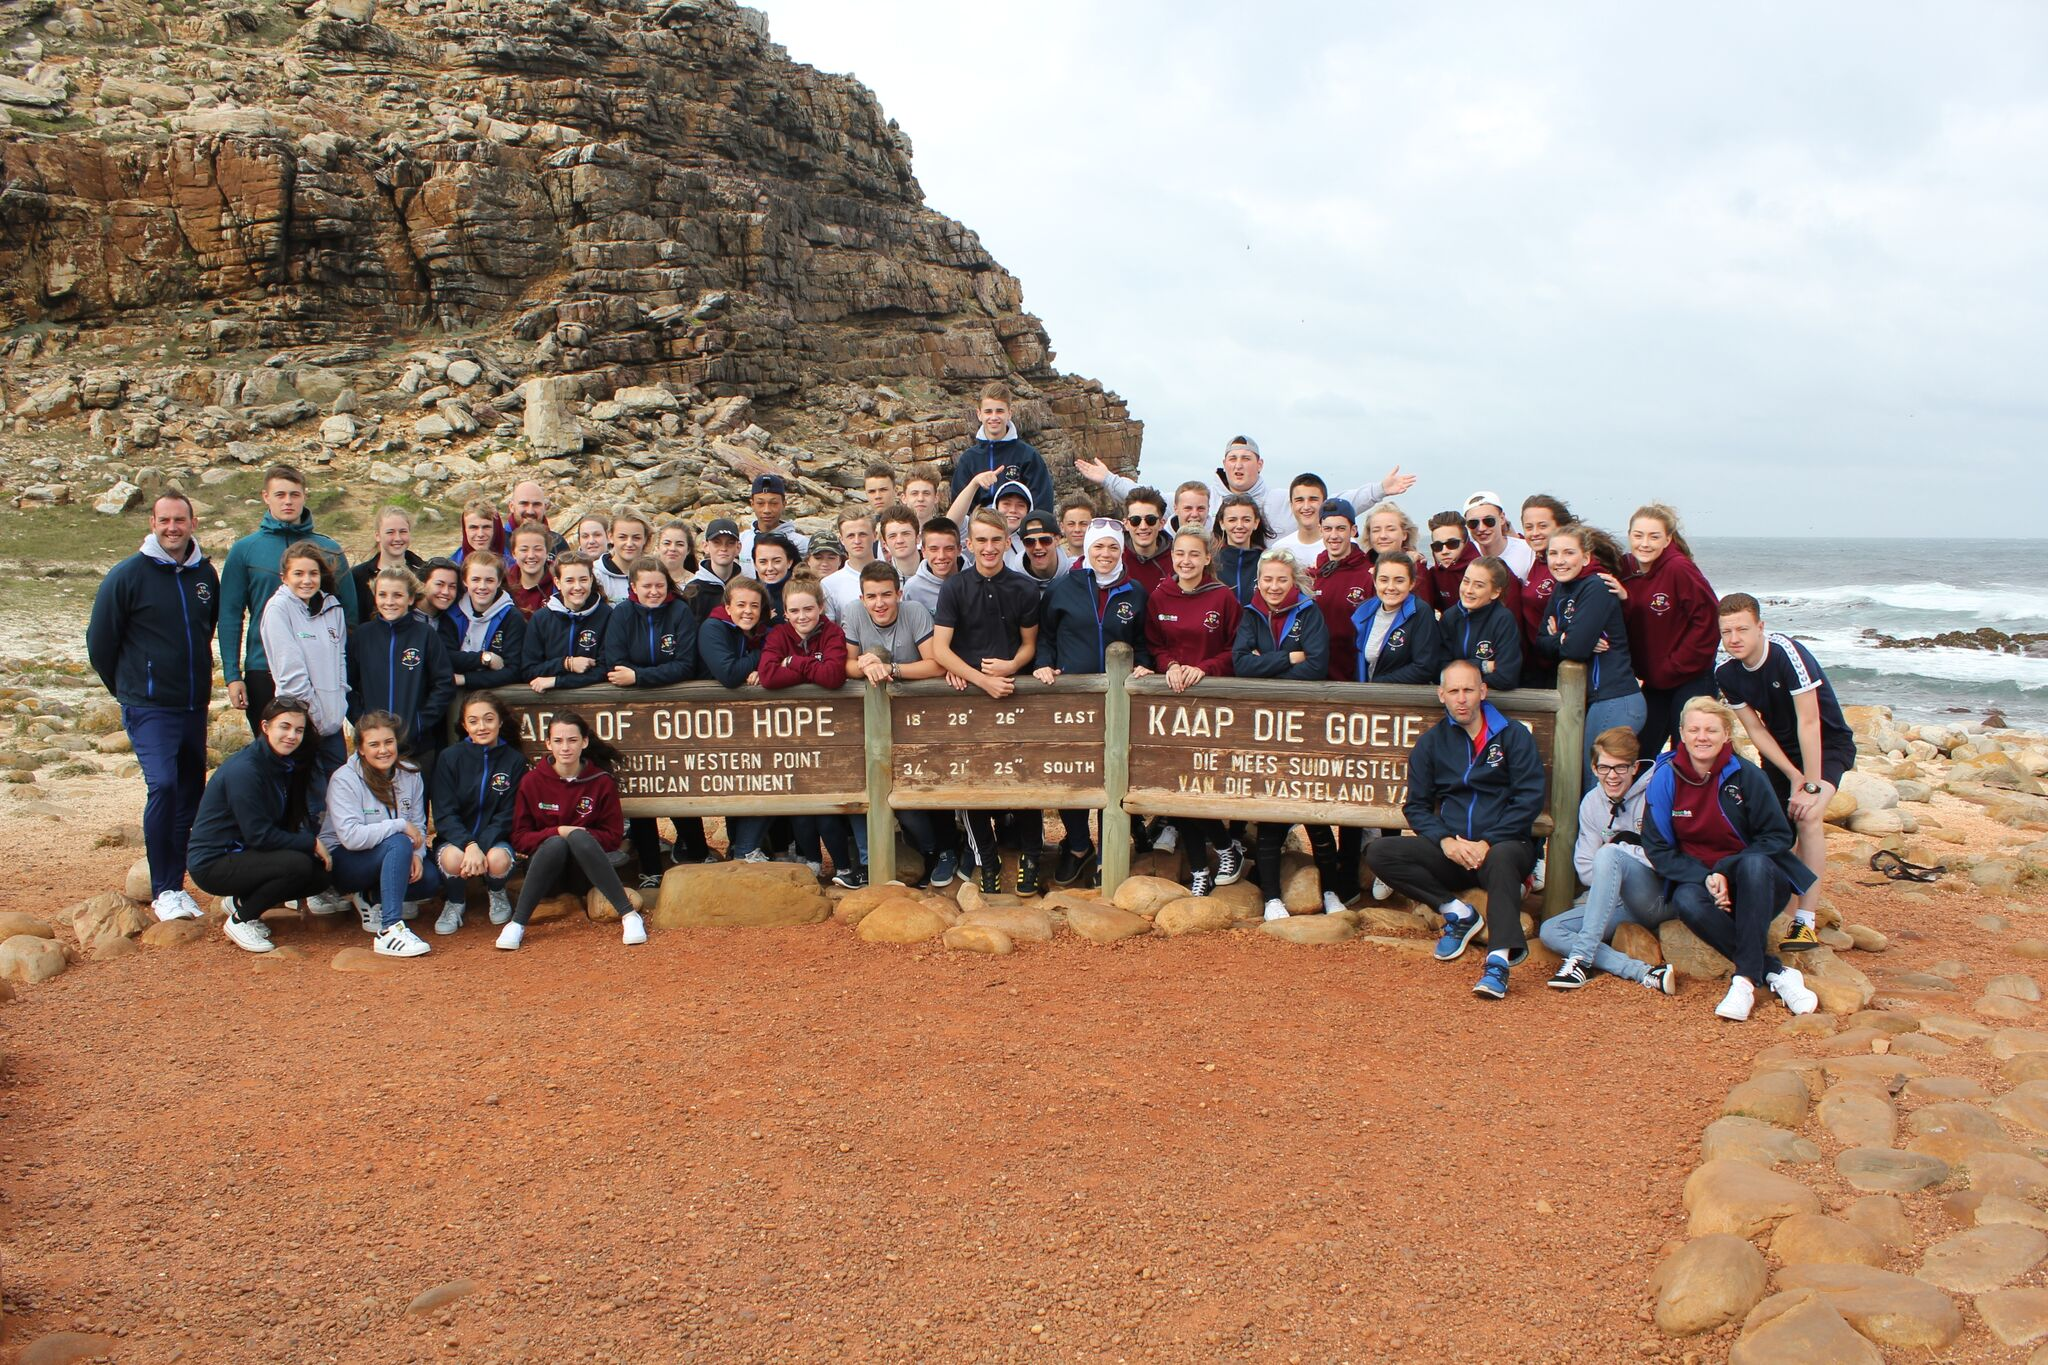 Students begin fundraising for a trip of the lifetime